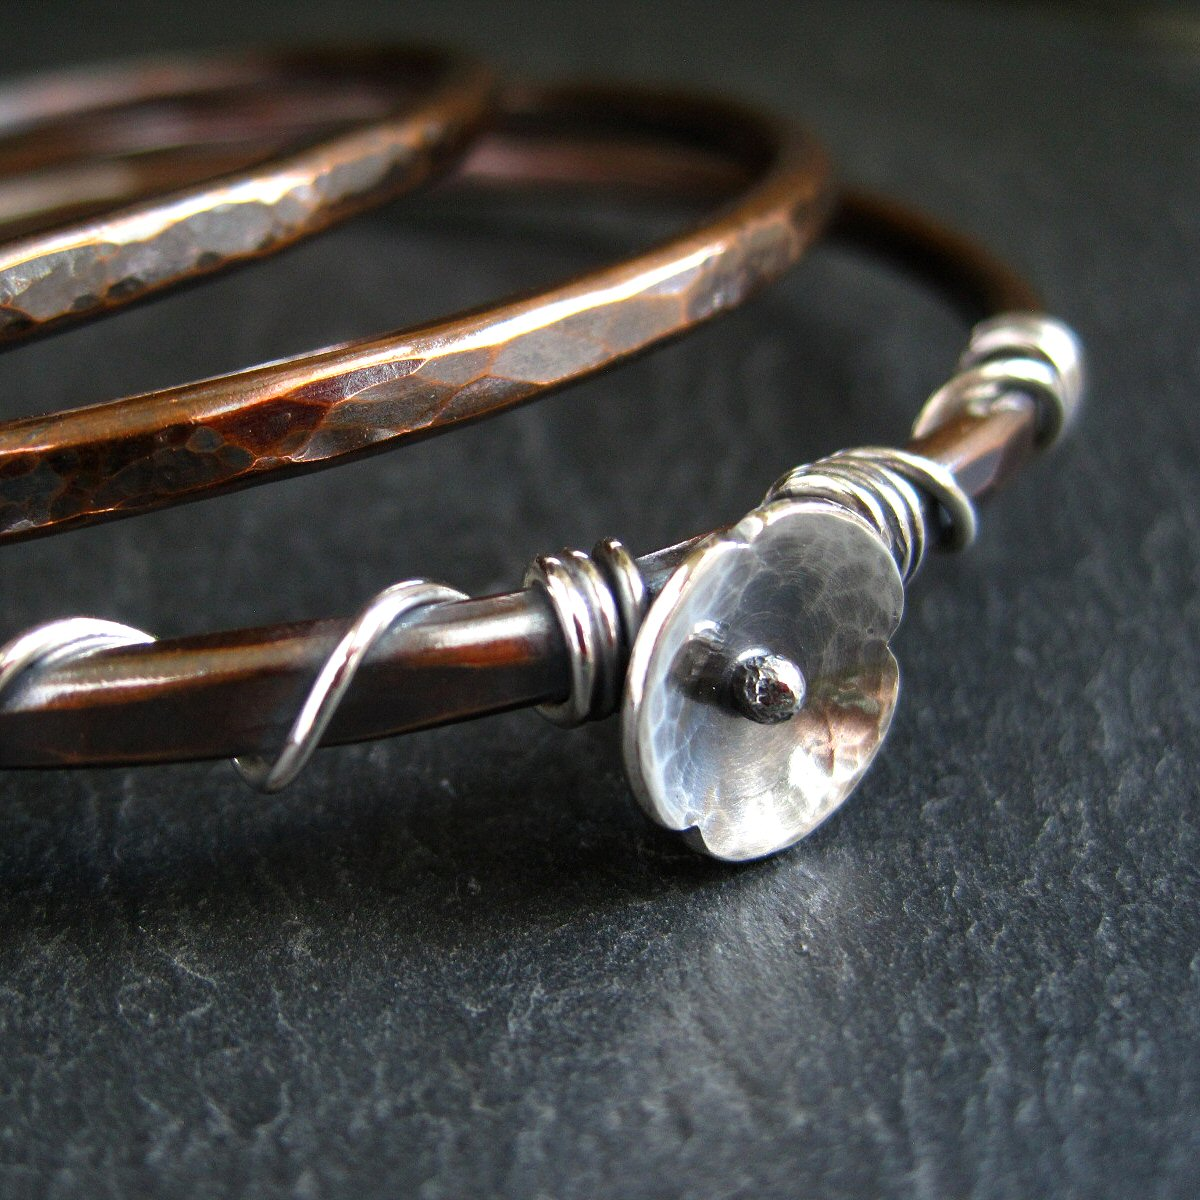 New Copper Bangles - Flowers, Beads, Twists And Linked Designs!